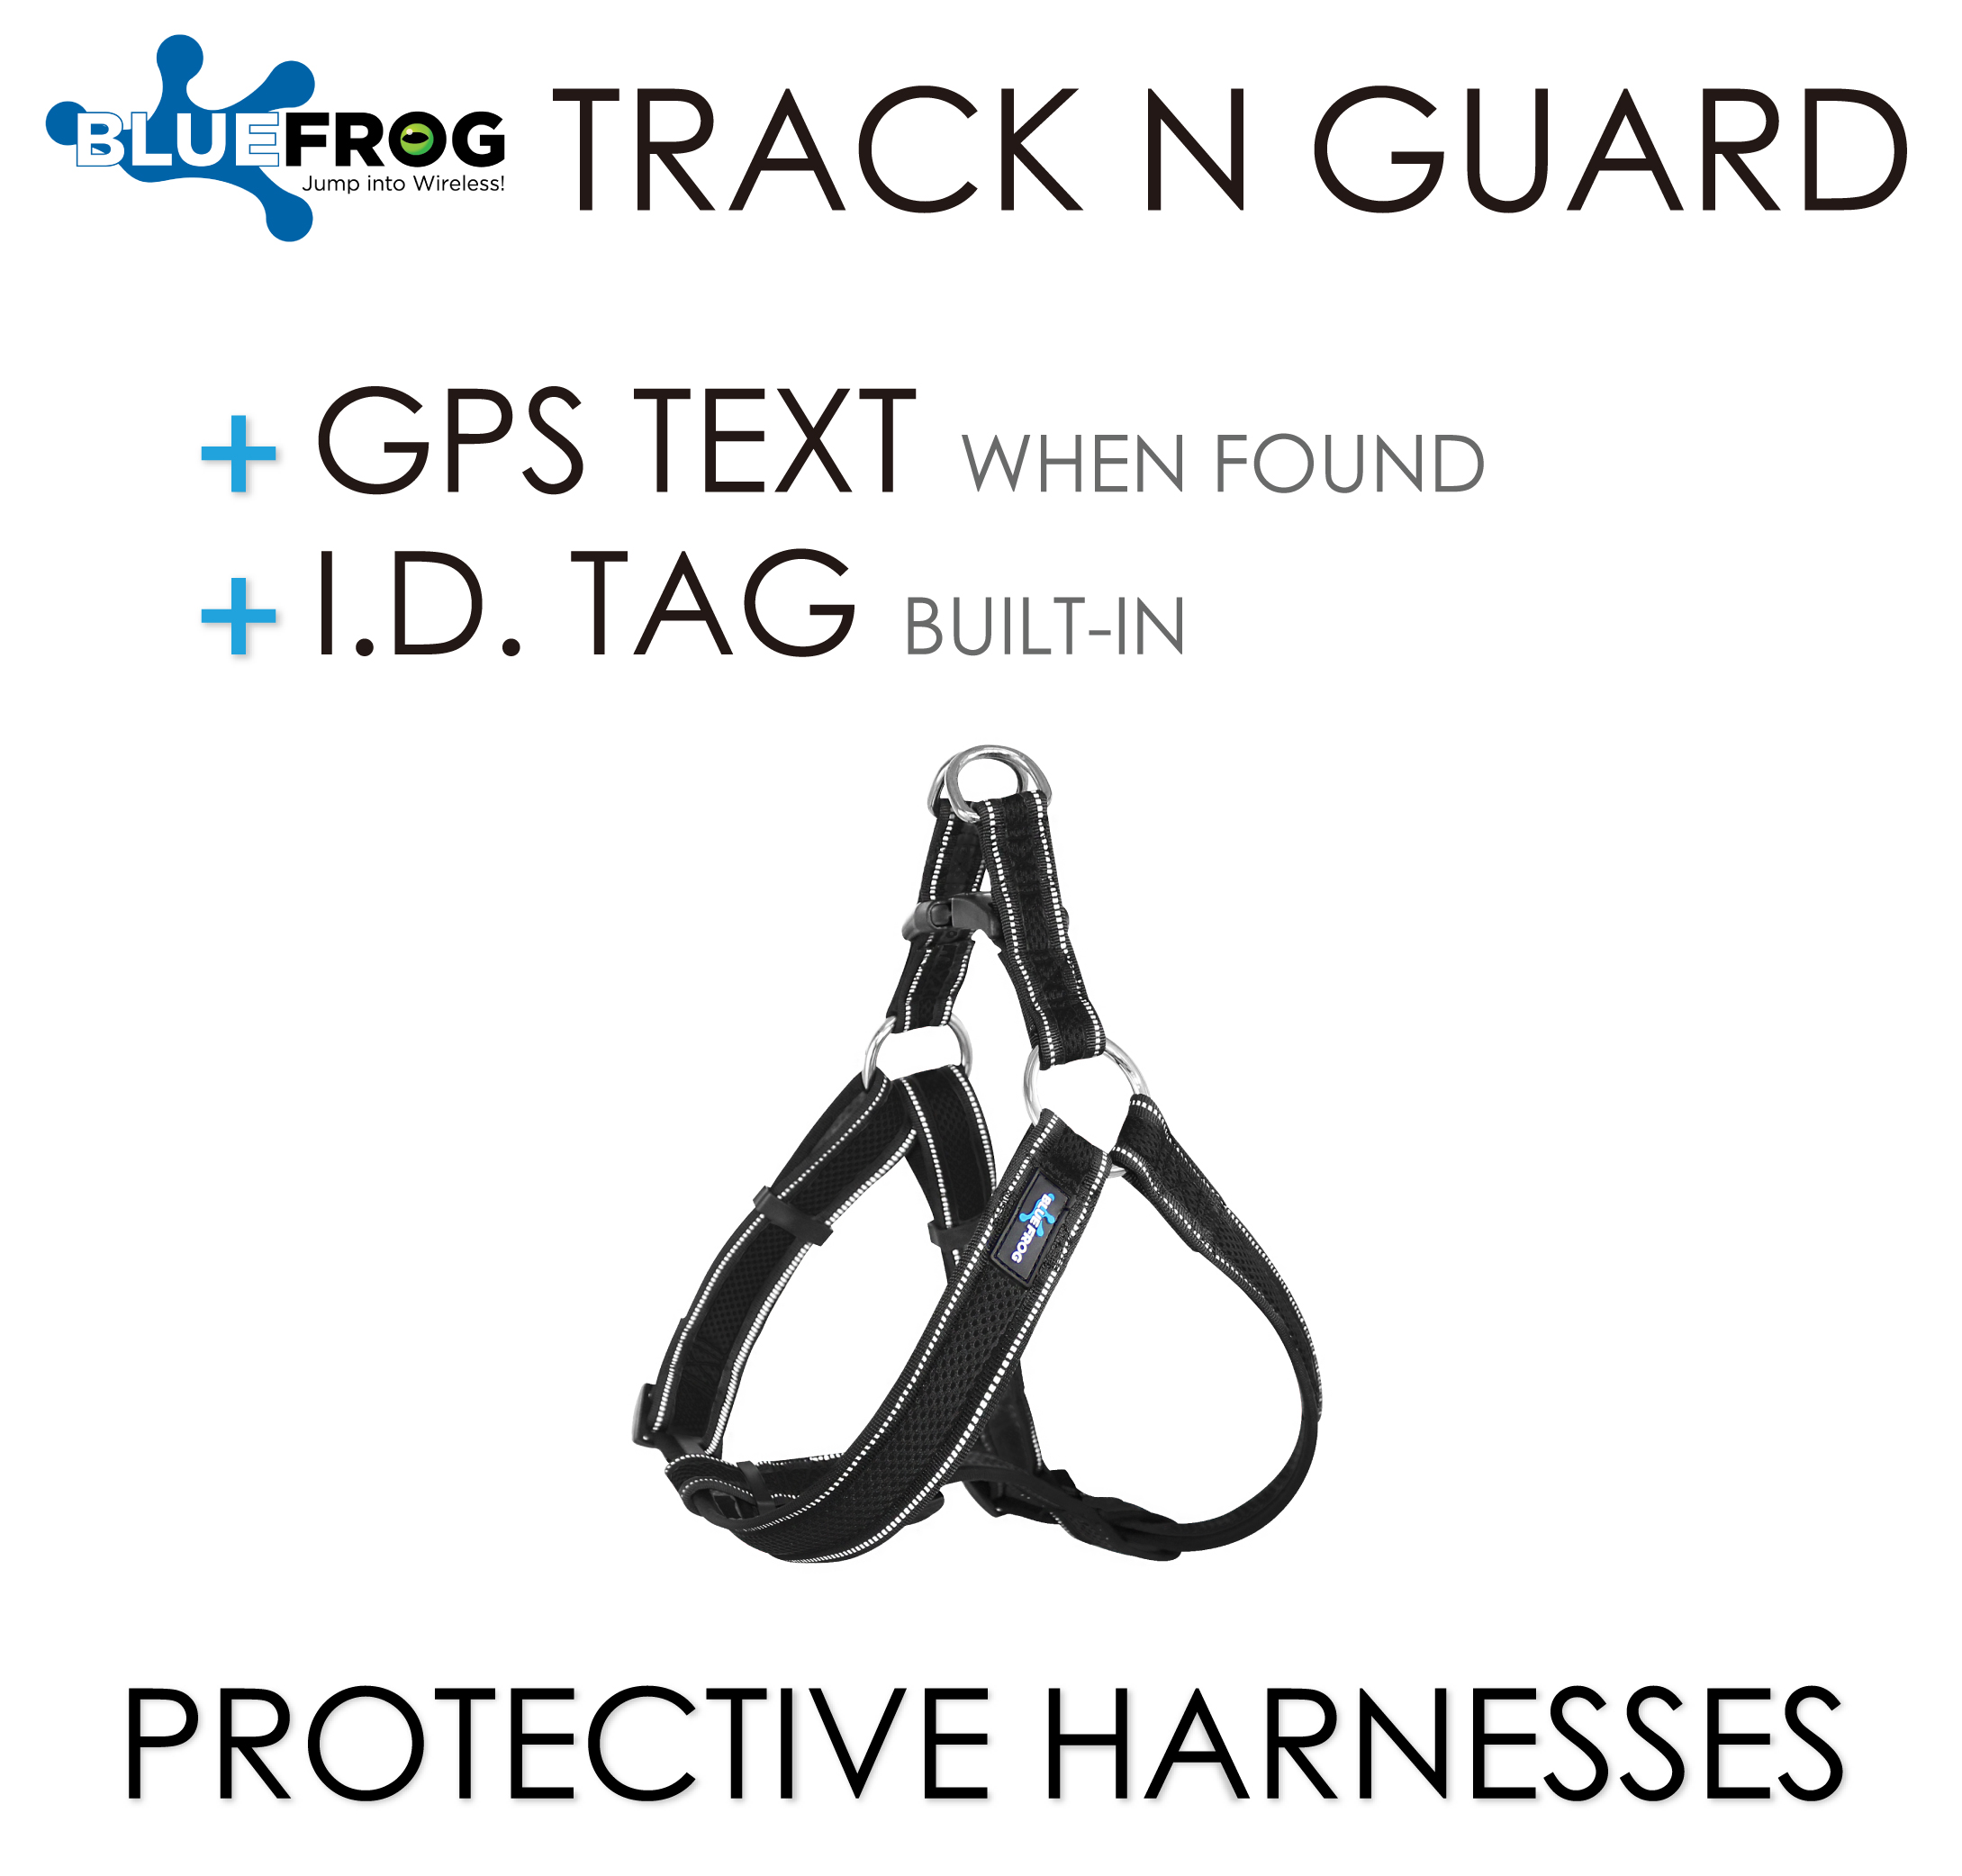 Blue Frog 1x Track N Guard Gps Message Ready Amp Built In I